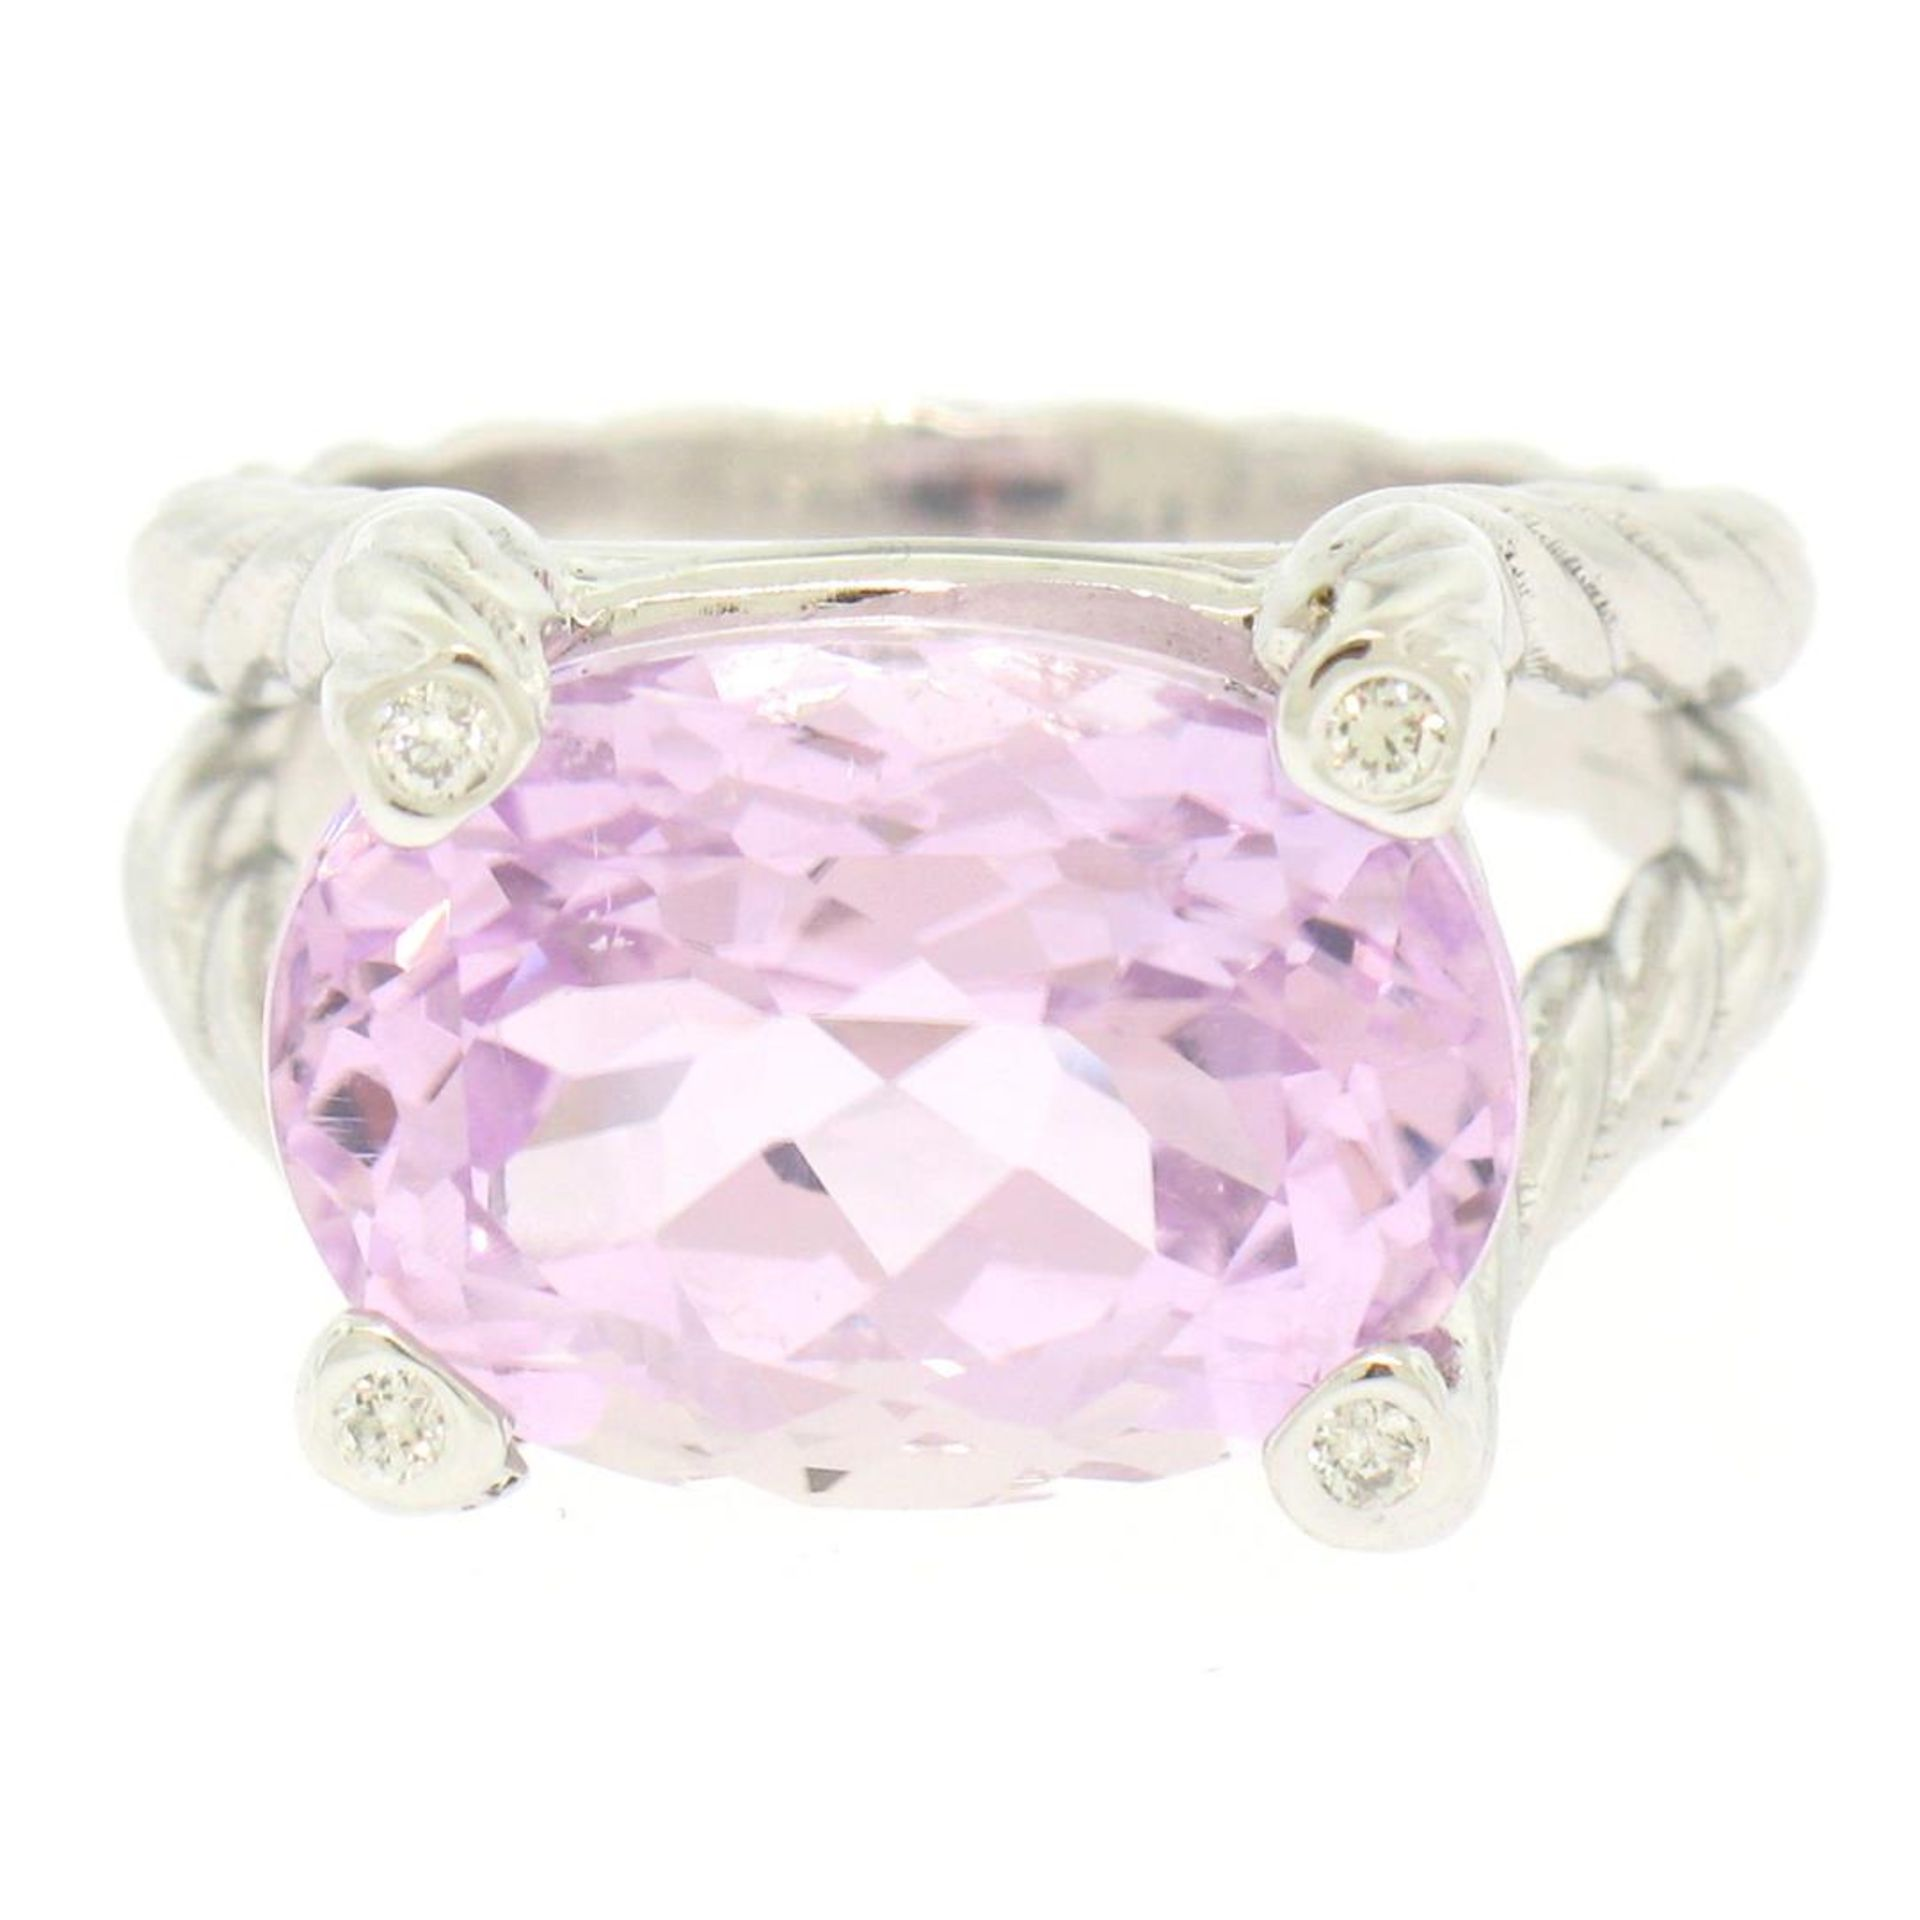 14k White Gold Twisted Cable 8.5 ctw Oval Kunzite Solitaire Ring 4 Diamond Accen - Image 5 of 8